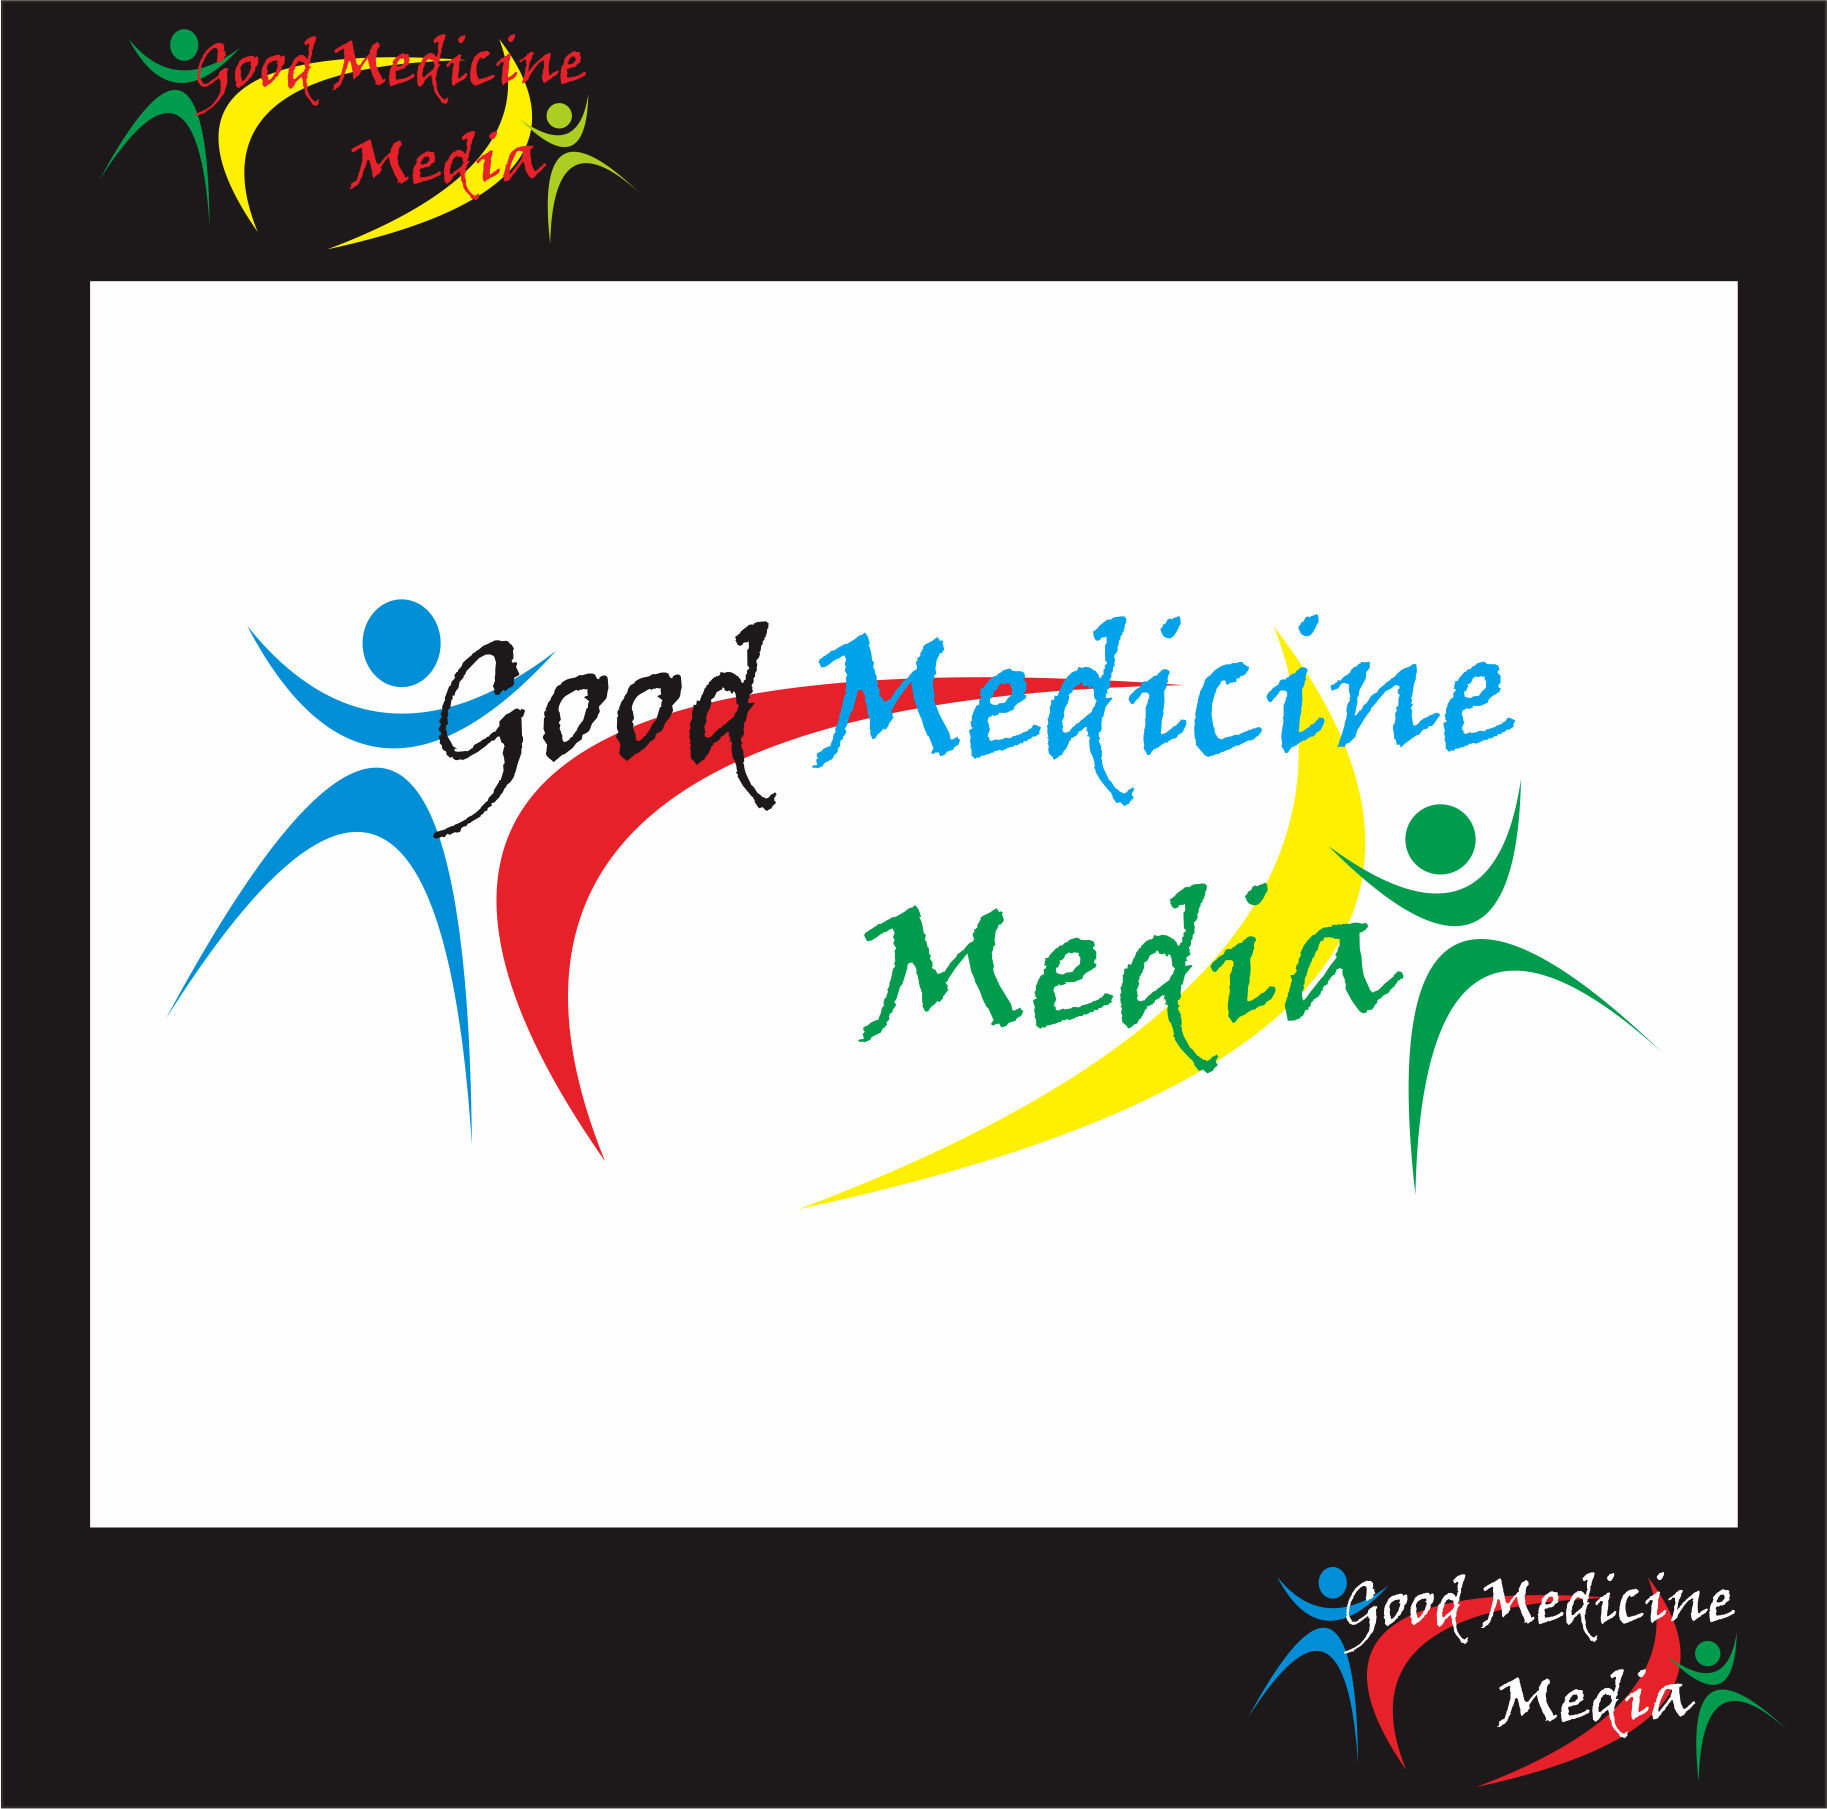 Logo Design by Teguh Hanuraga - Entry No. 17 in the Logo Design Contest Good Medicine Media Logo Design.